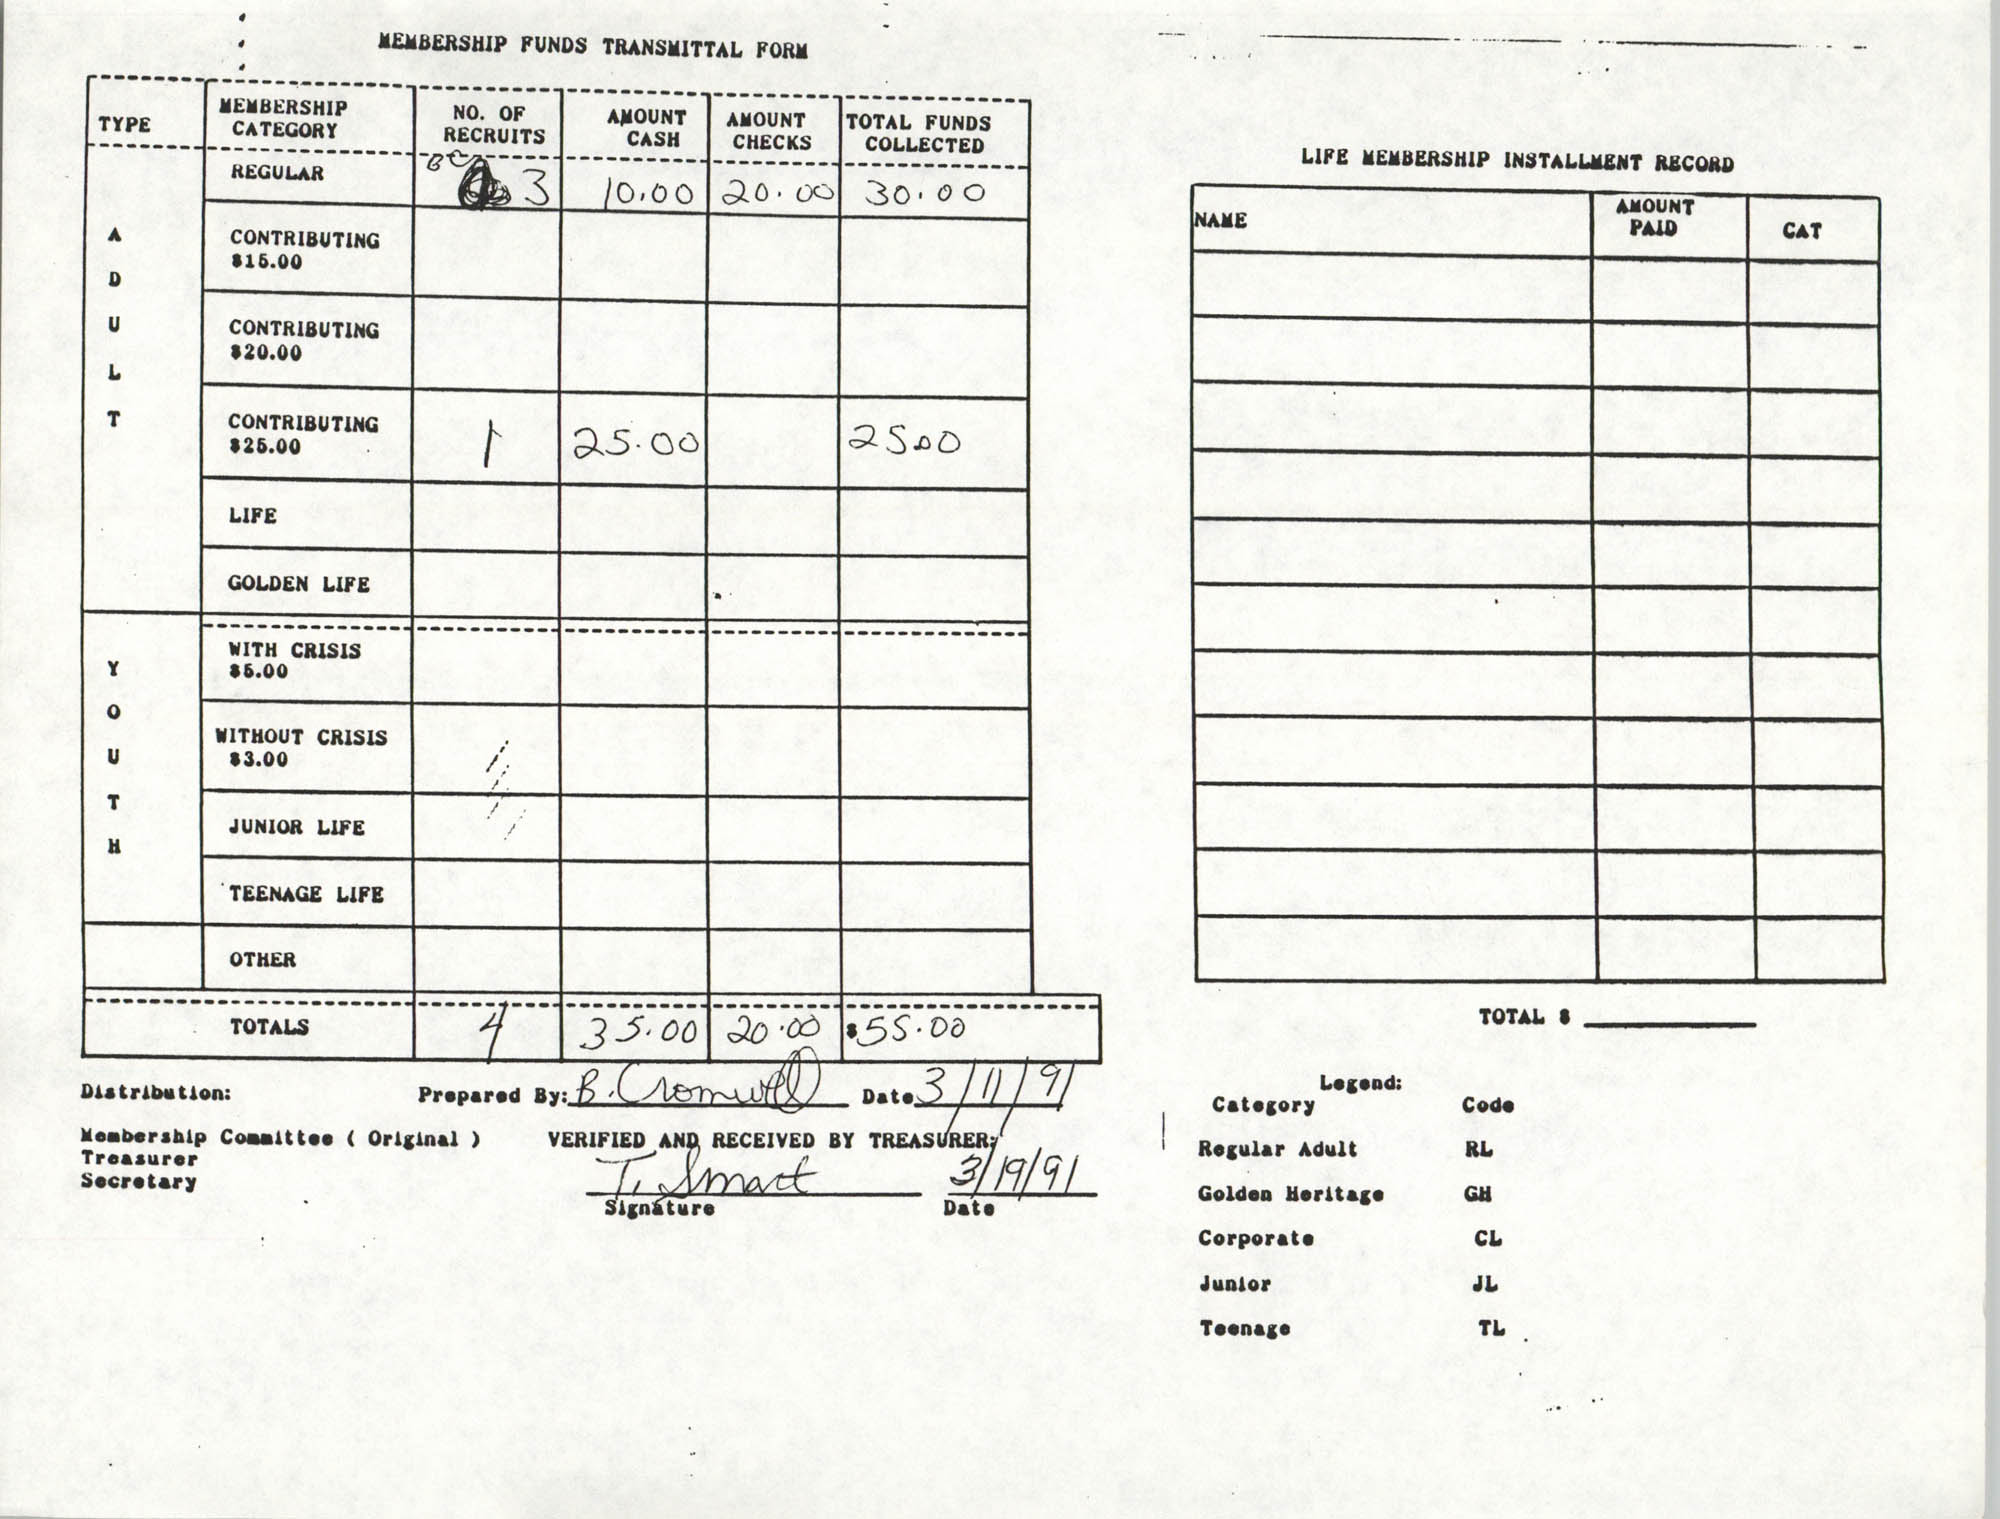 Charleston Branch of the NAACP Funds Transmittal Forms, March 1991, Page 4